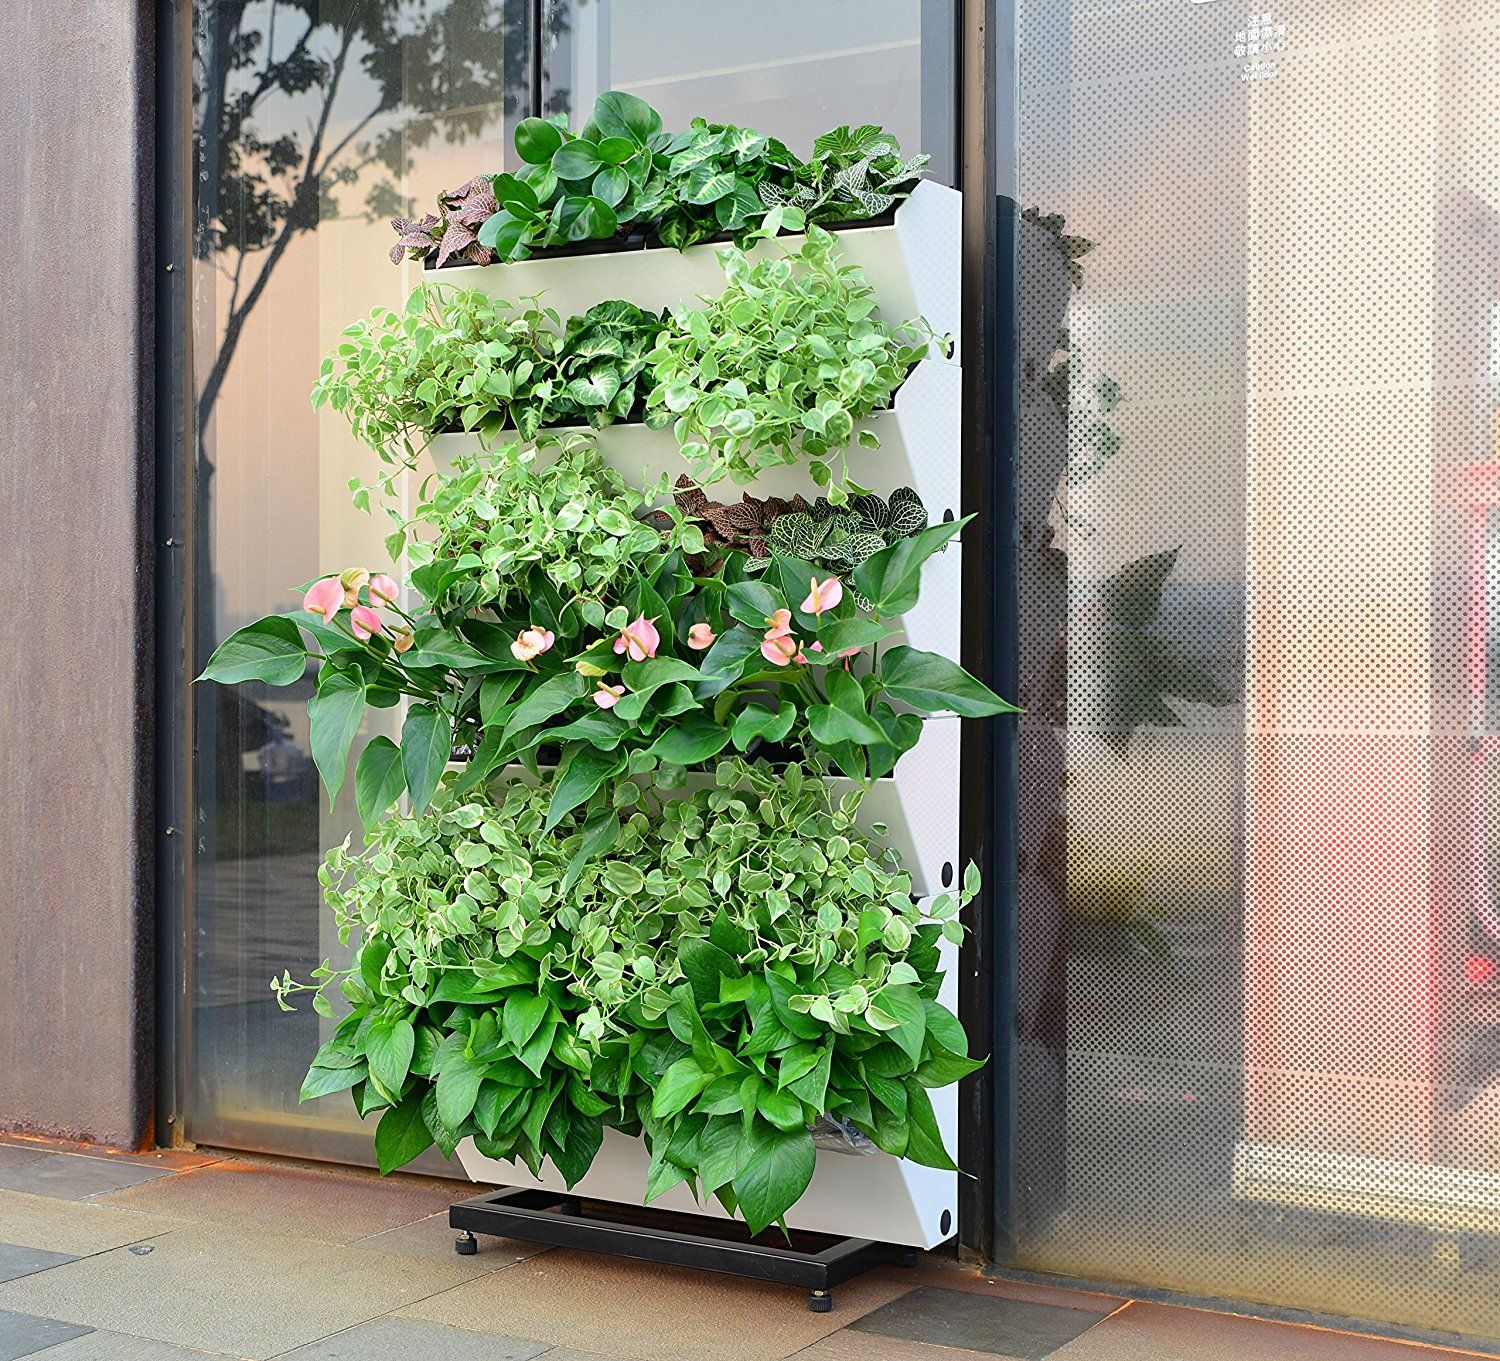 Amazon Com Bloomwall Vertical Wall Garden Planter By Savvygrow Plant Rack Self Watering System Include Vertical Garden Vertical Herb Garden Vertical Planter